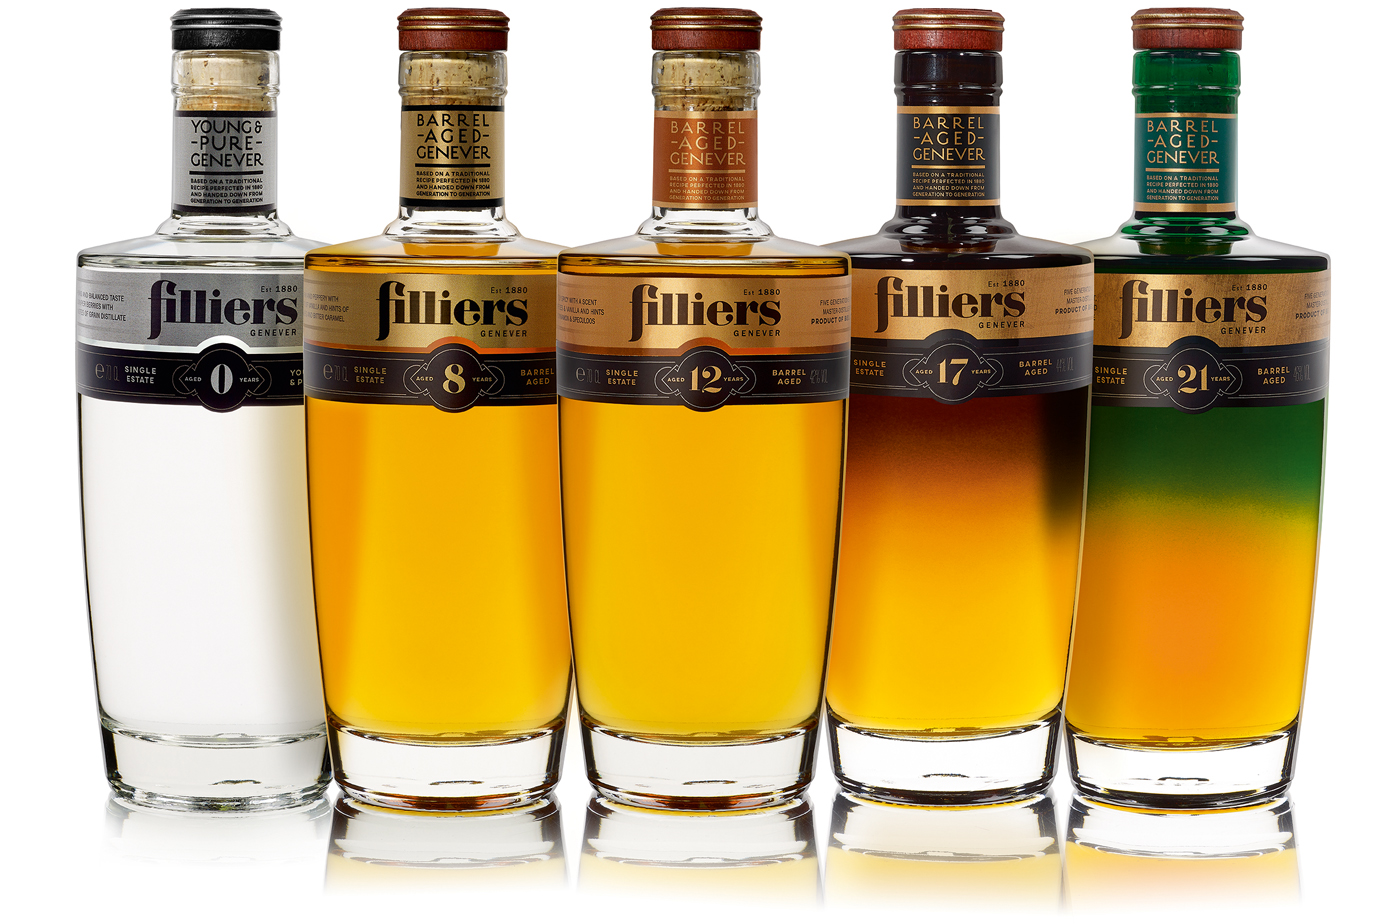 Filliers Barrel Aged Genevers line-up